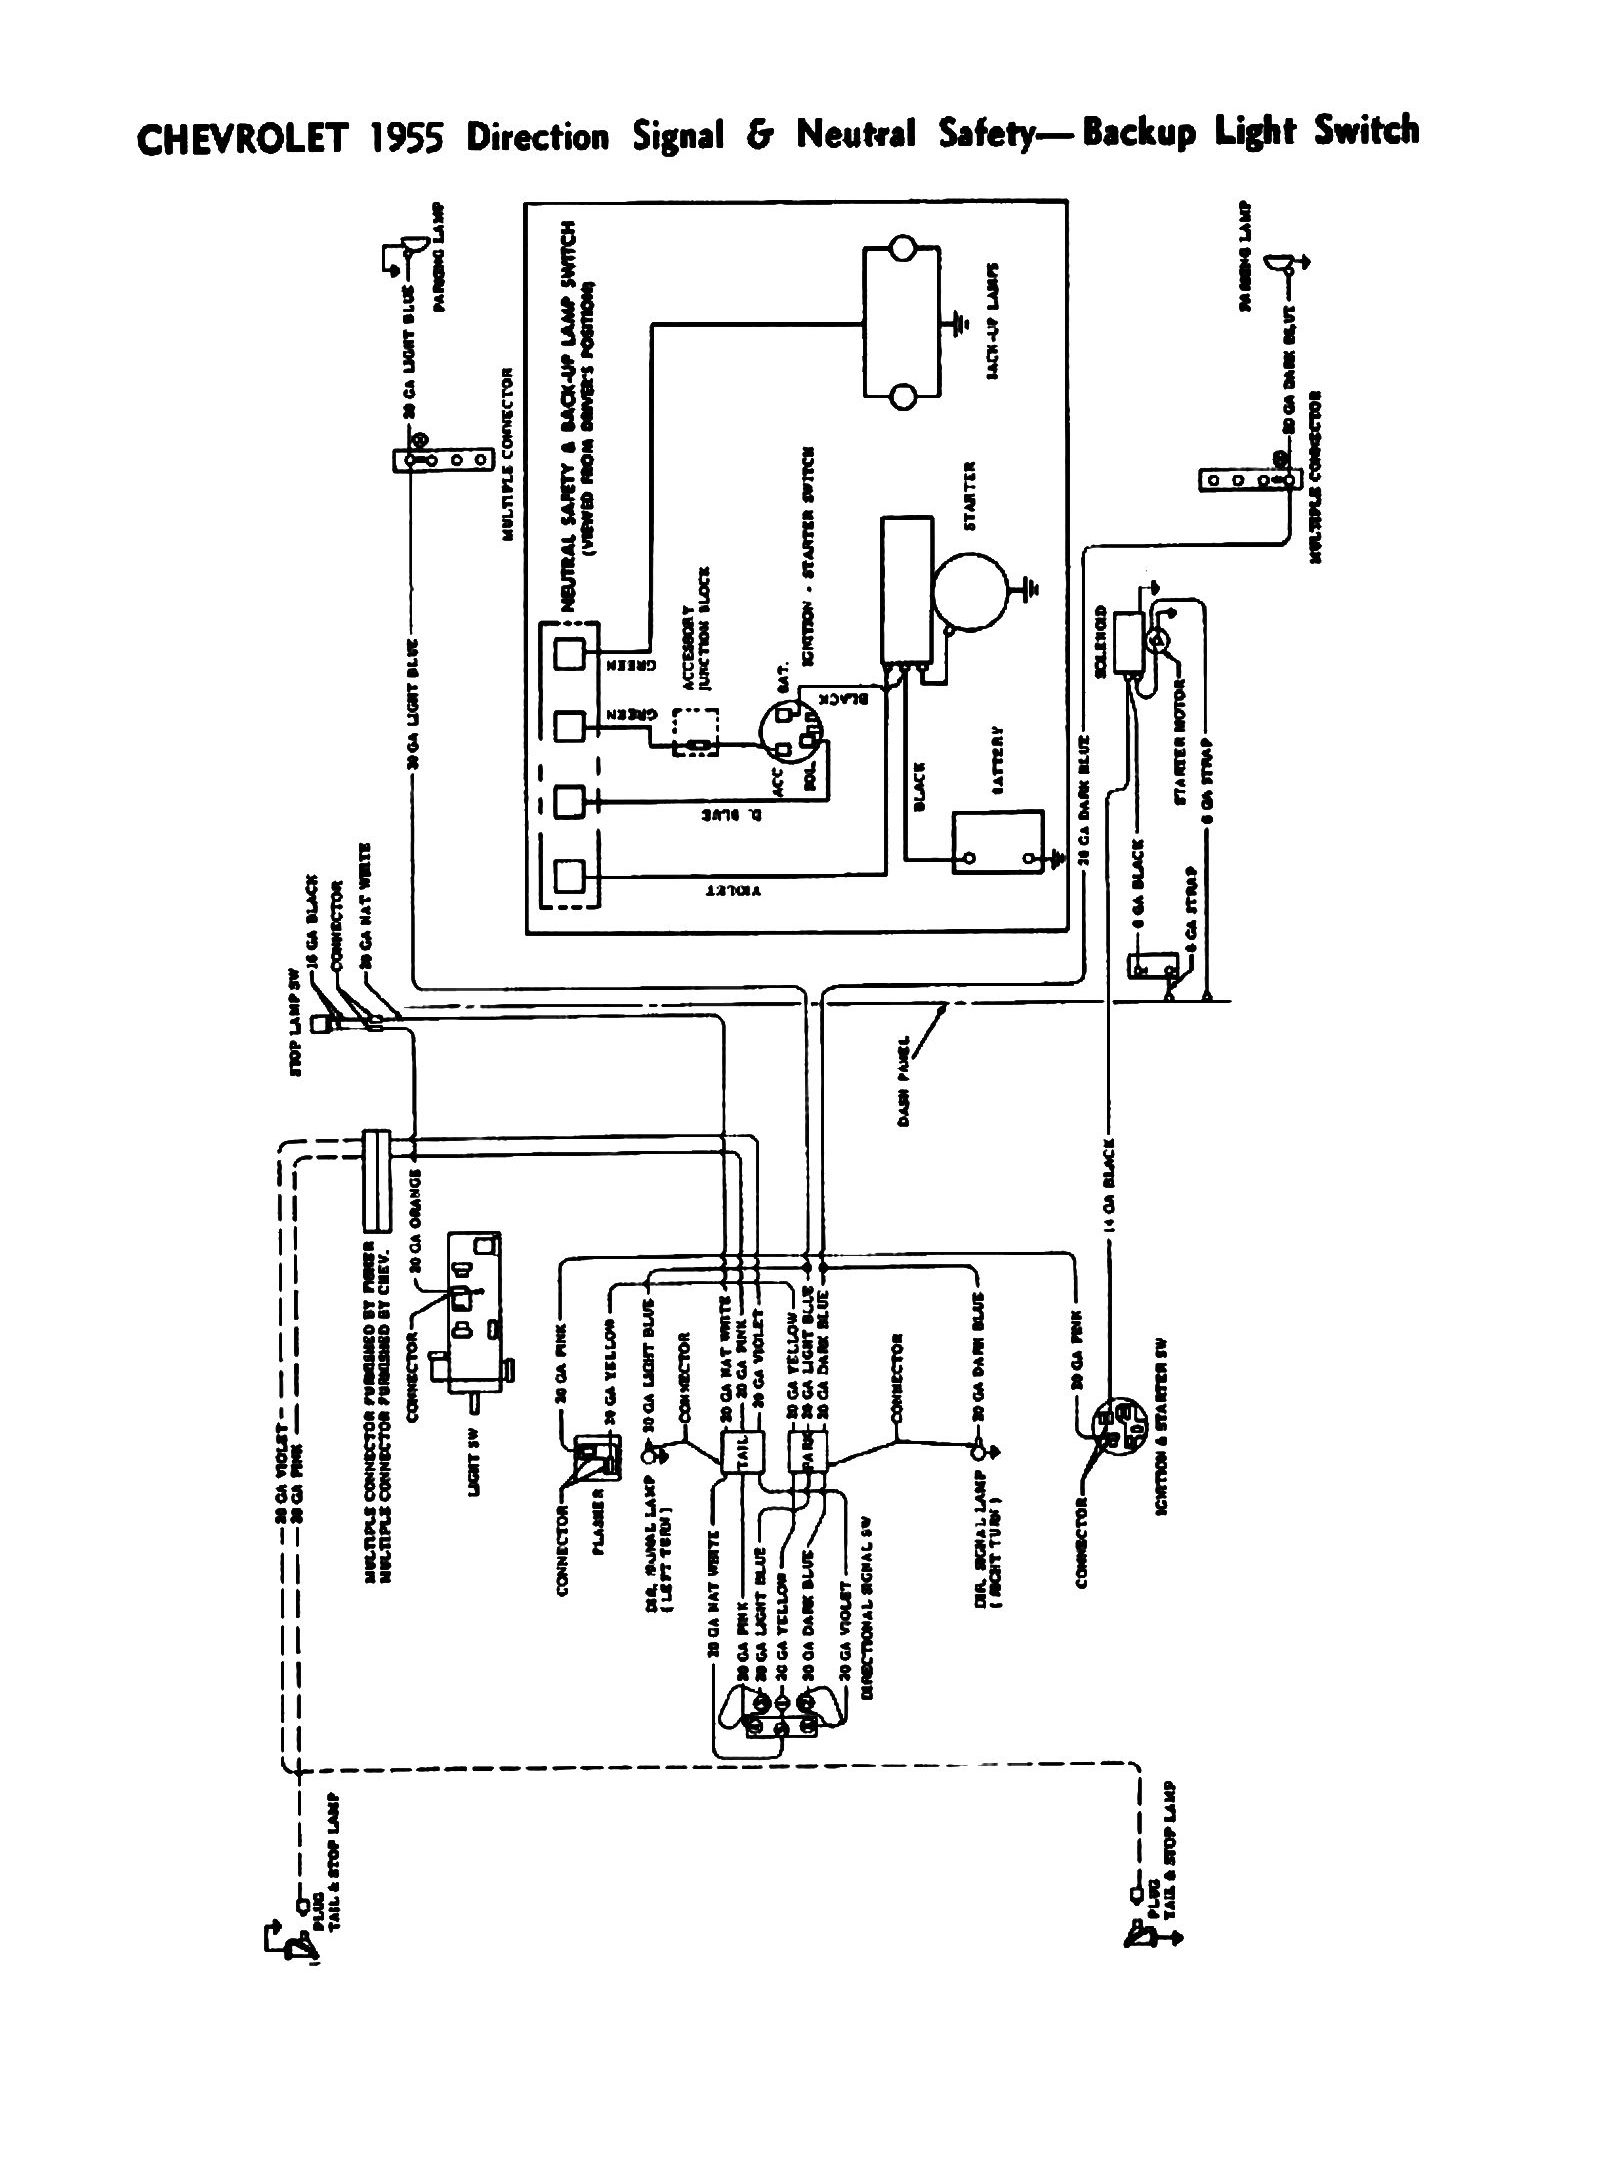 ignition schematic for 57 chevy car